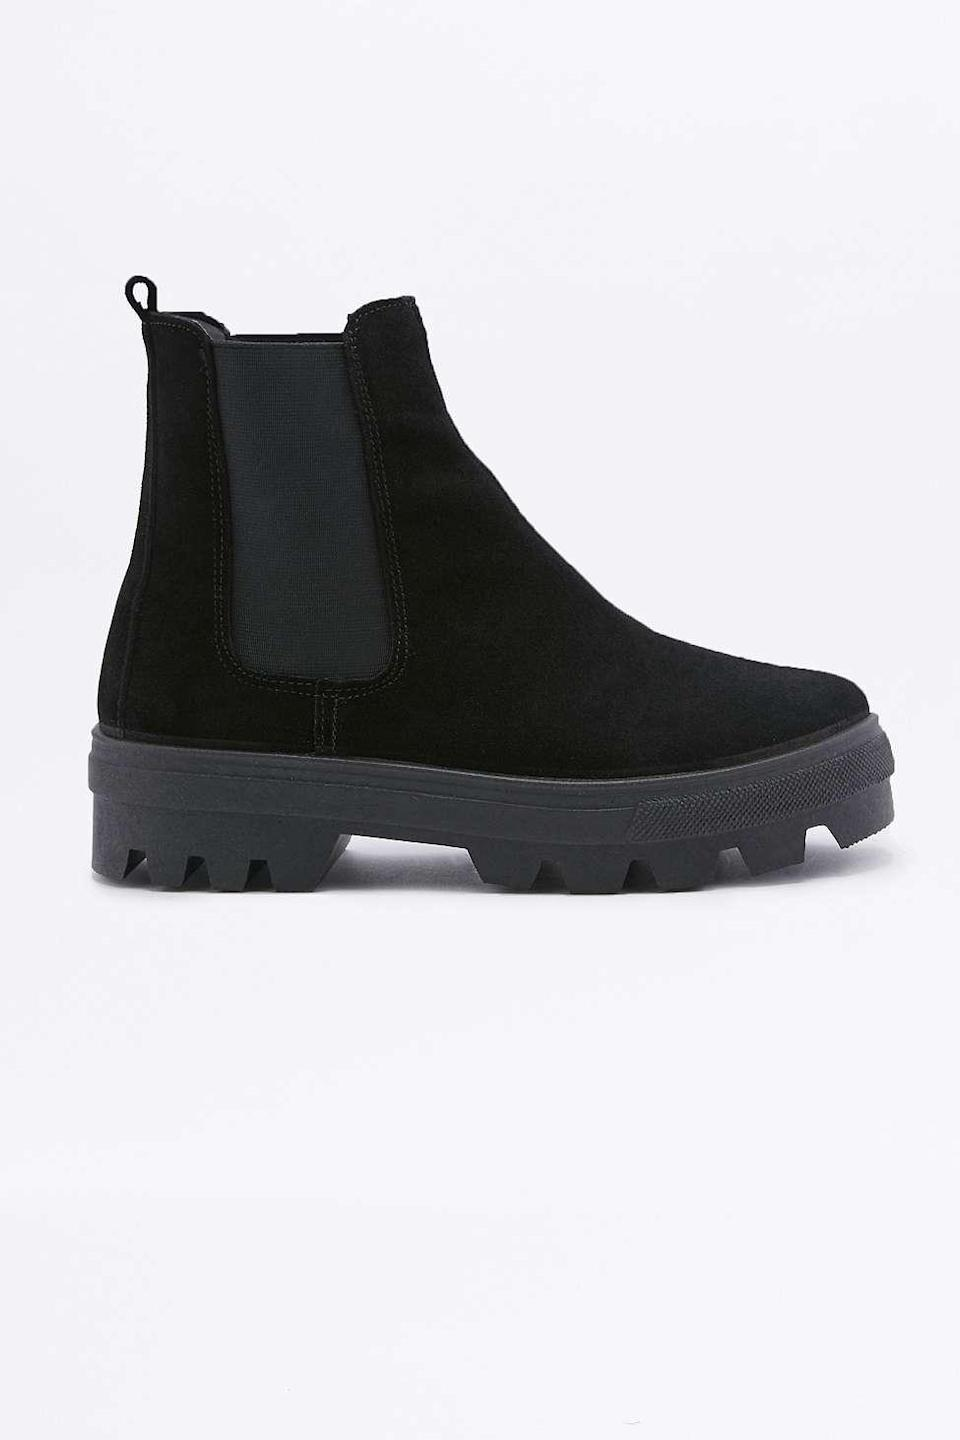 <p>Urban Outfitters, £45</p>